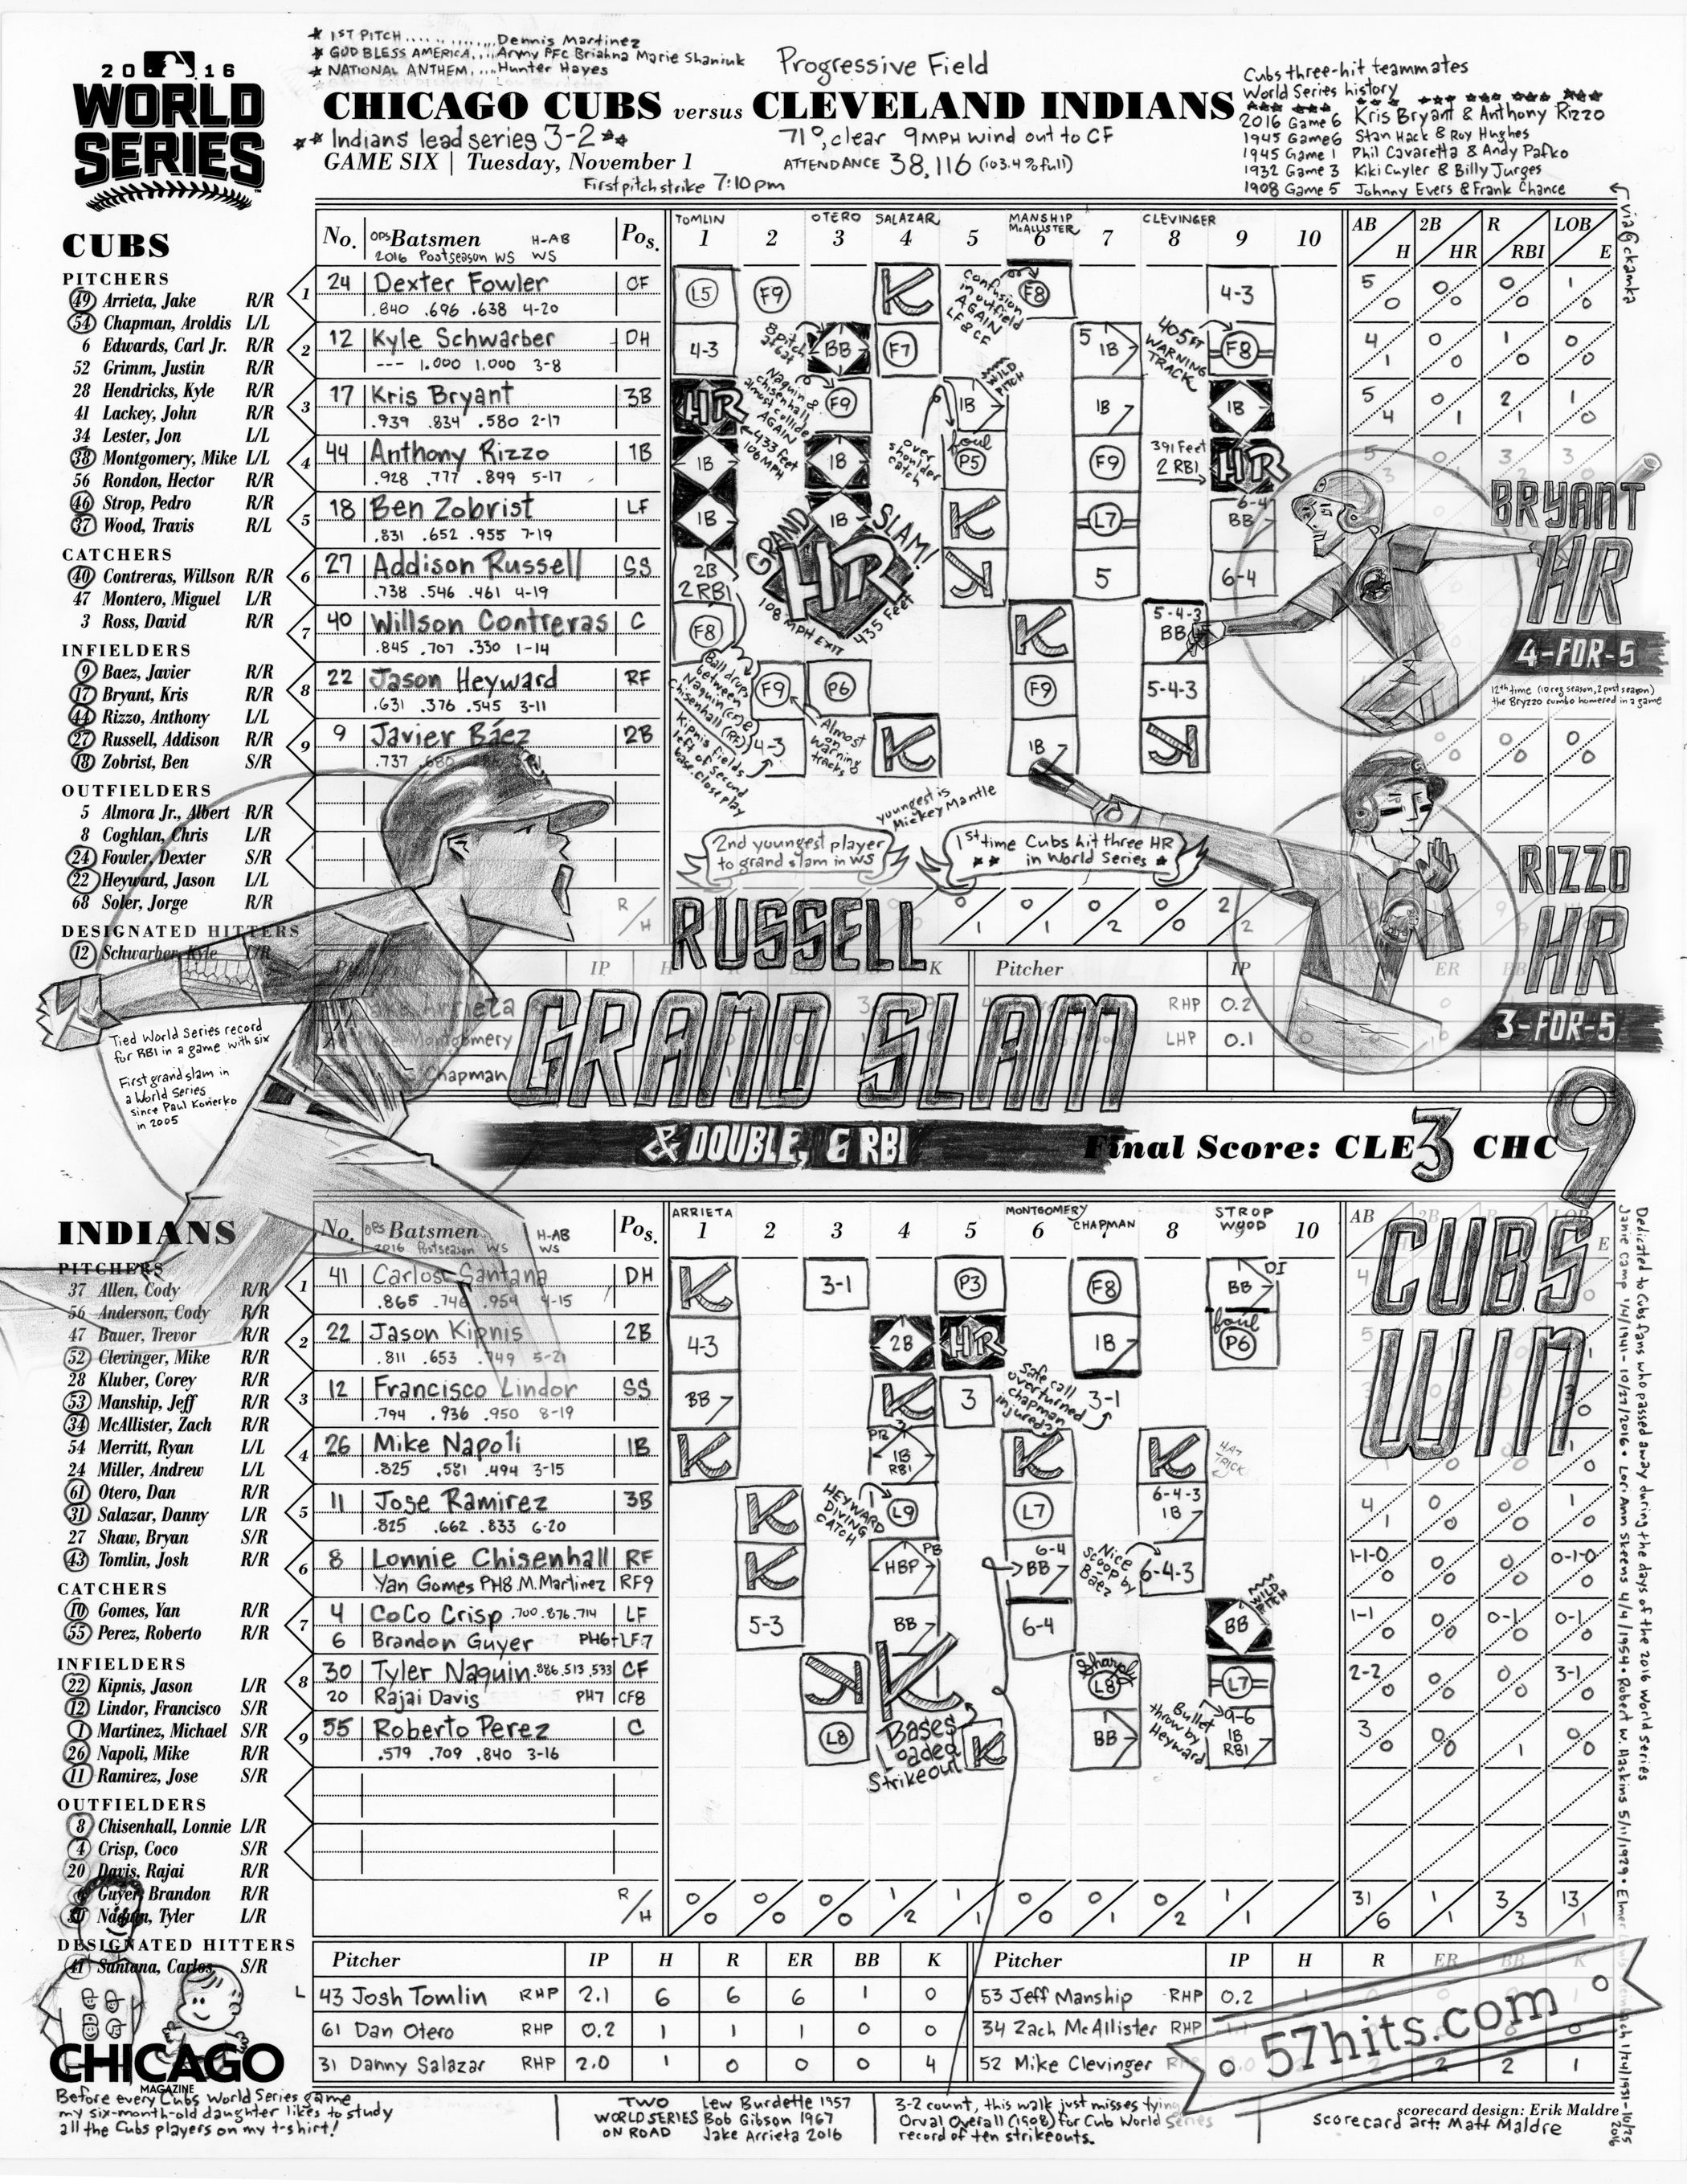 Game 6 scorecard for 2016 World Series by Matt Maldre